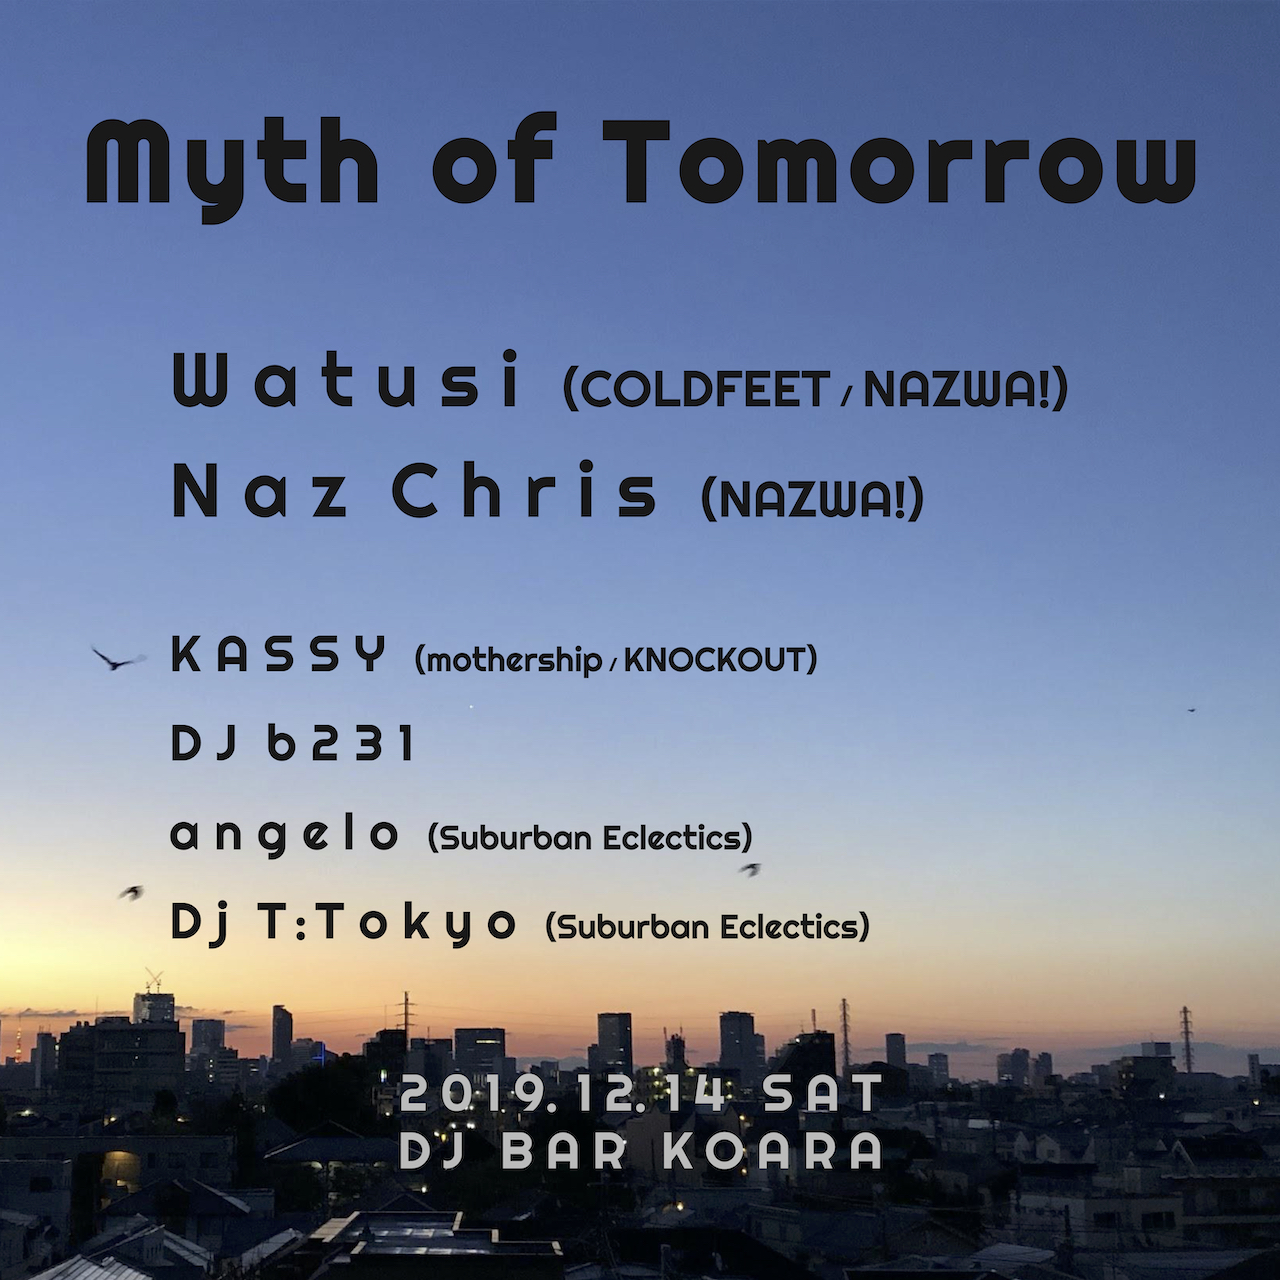 MYTH OF TOMORROW